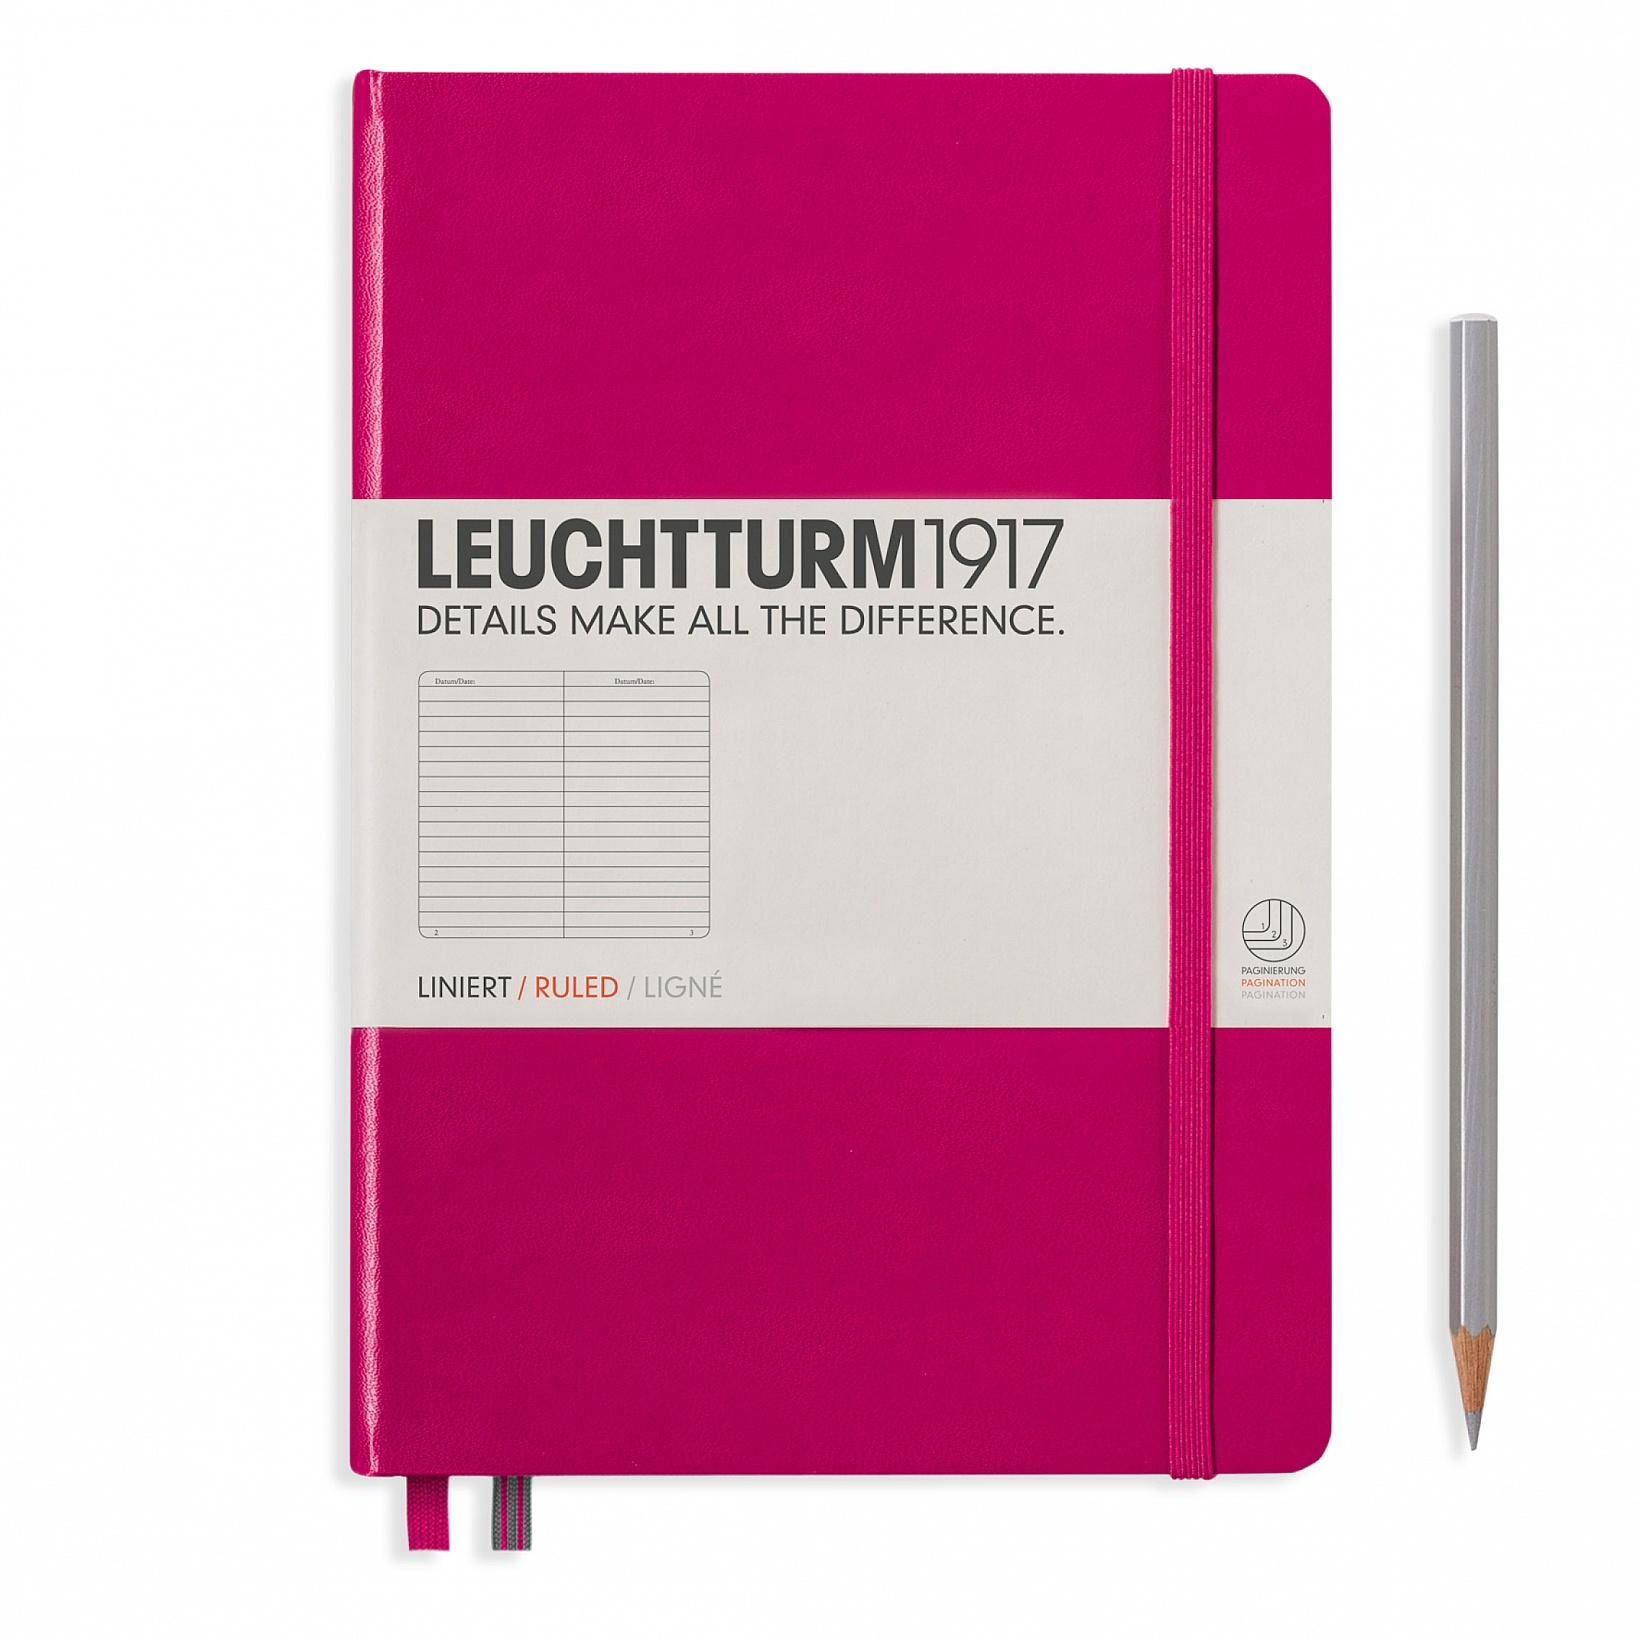 Leuchtturm 1917 A5 Medium Hardcover 249ct Berry|Ruled